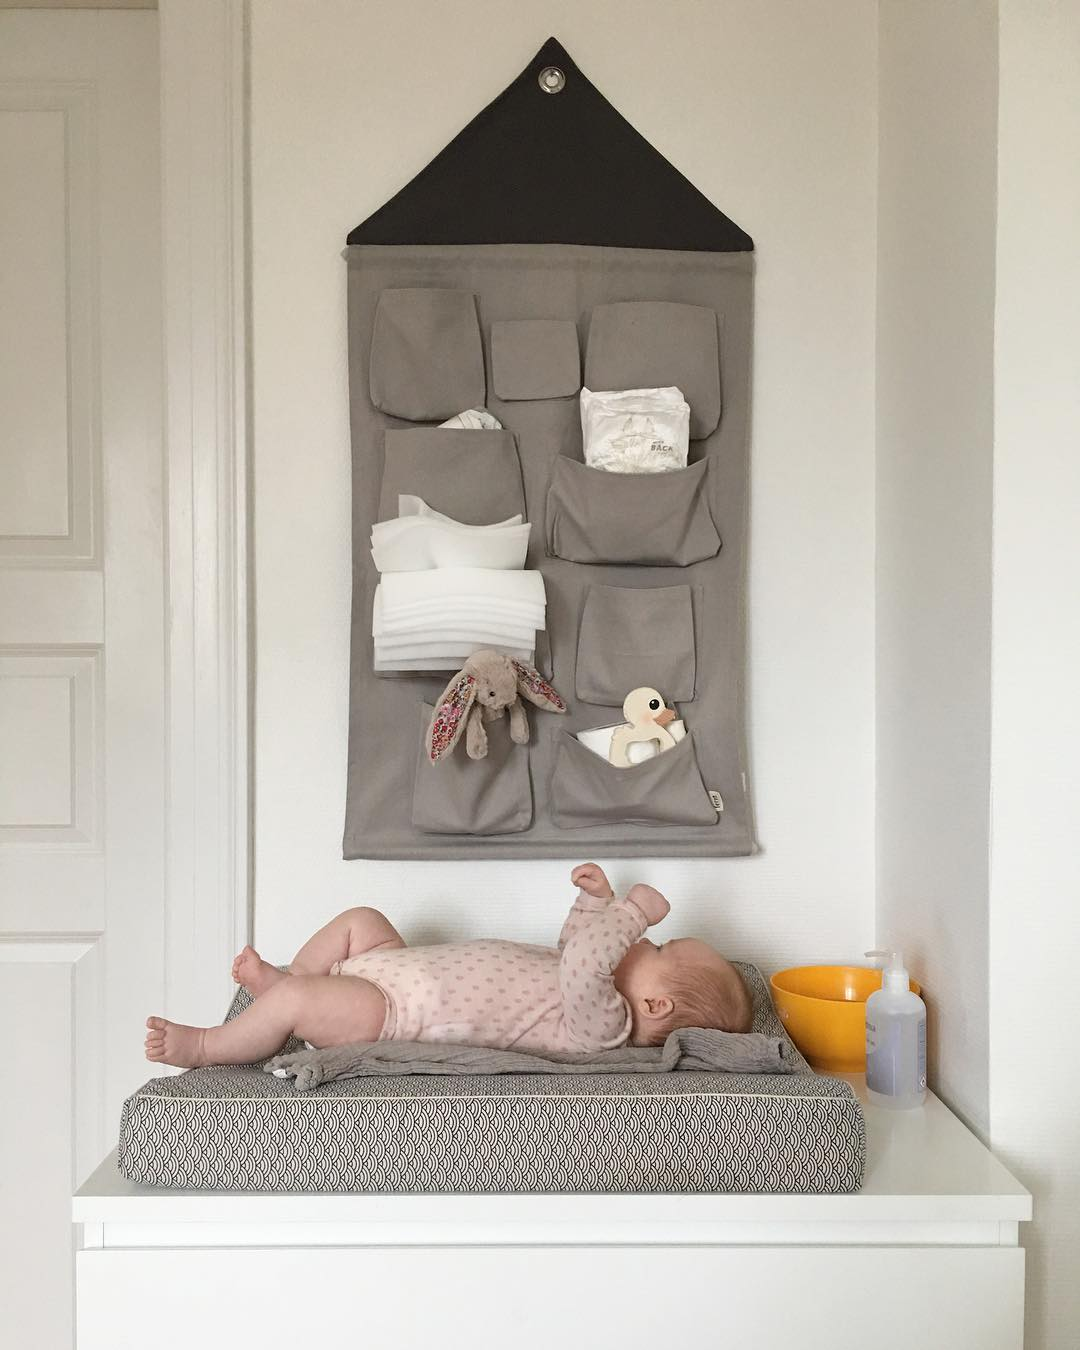 ferm-LIVING-House-Wall-Storage-https-www-fermliving-com-webshop-shop-kids-room-kids-wall-decorati-wallpaper-wp5007400